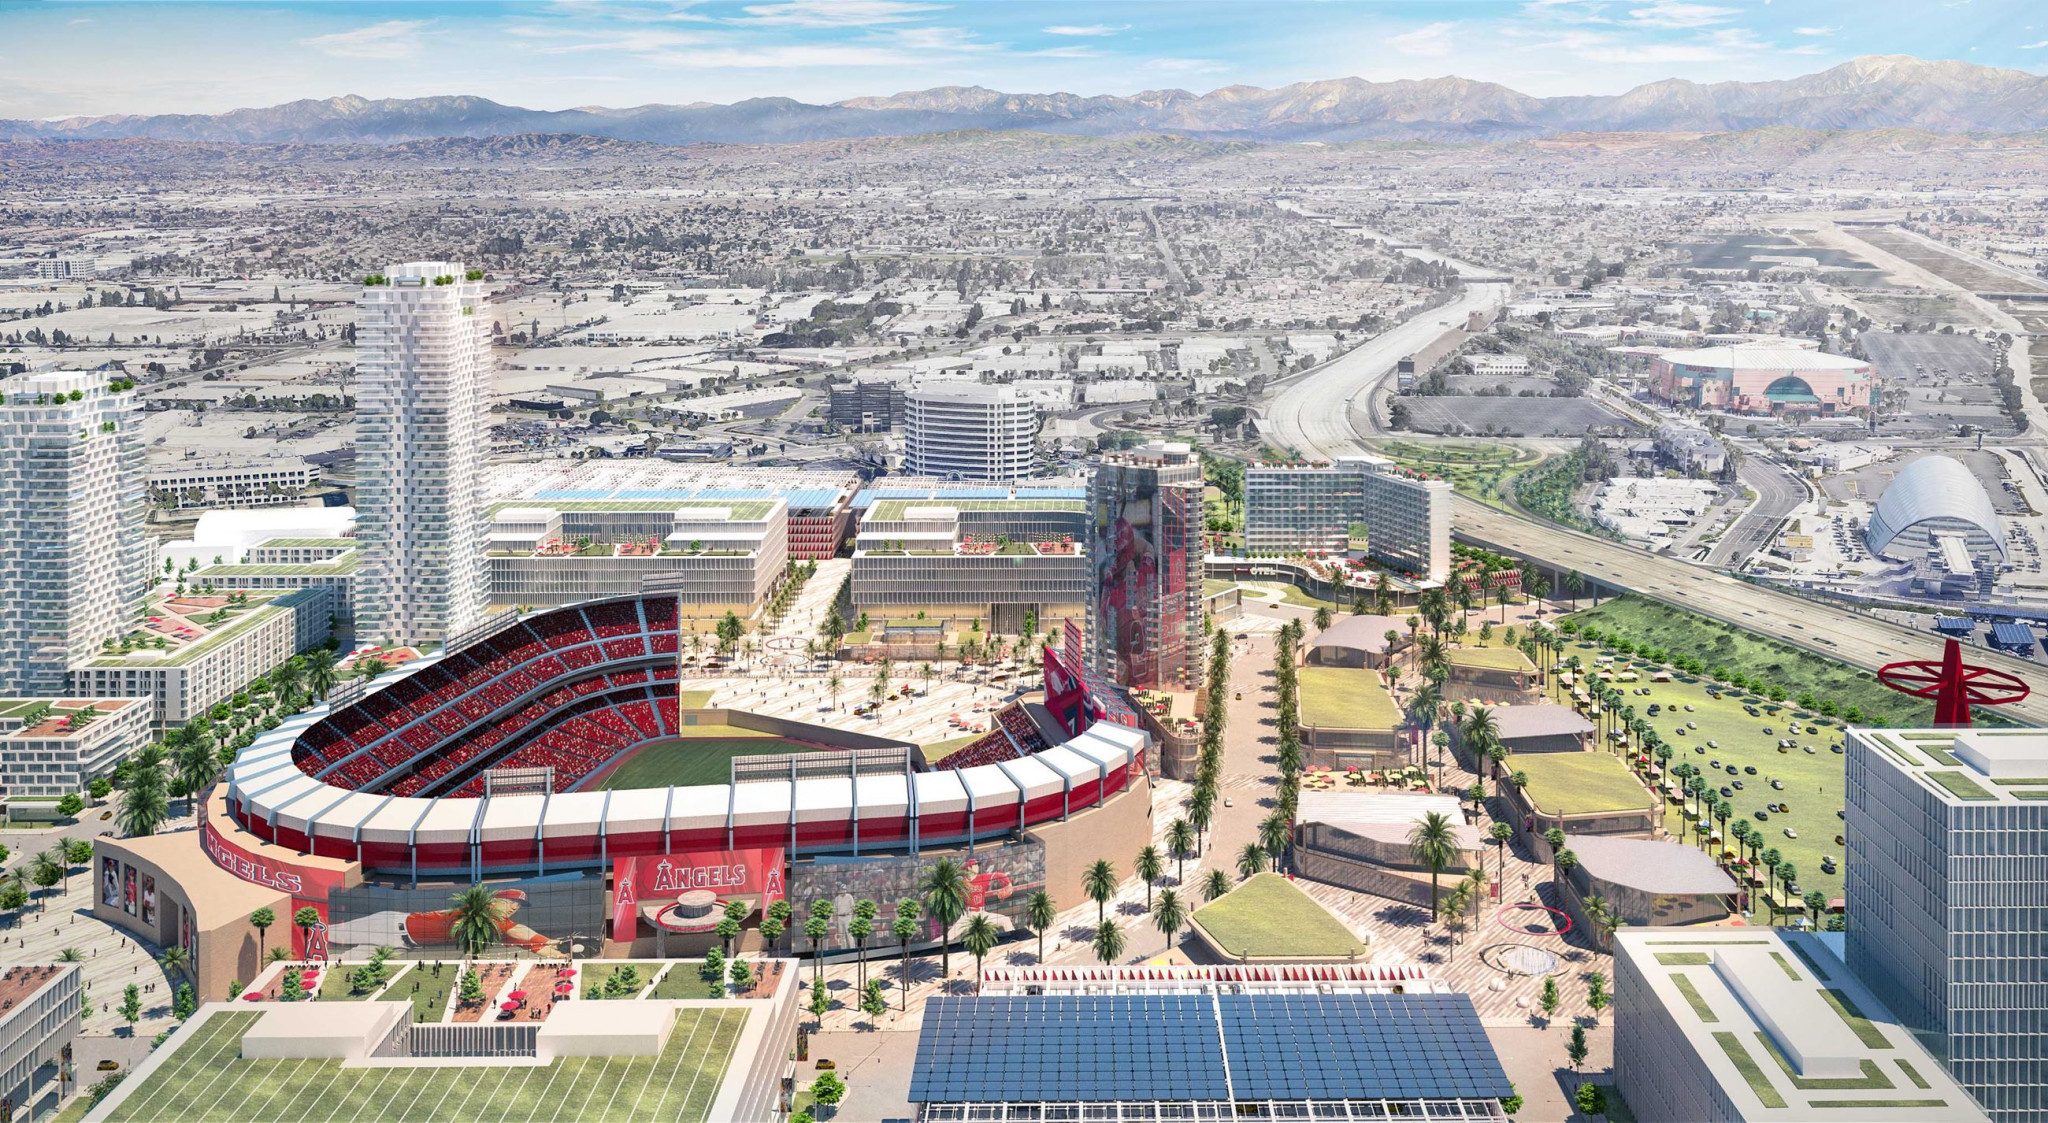 Proposals for development of Angel Stadium and surrounding area published